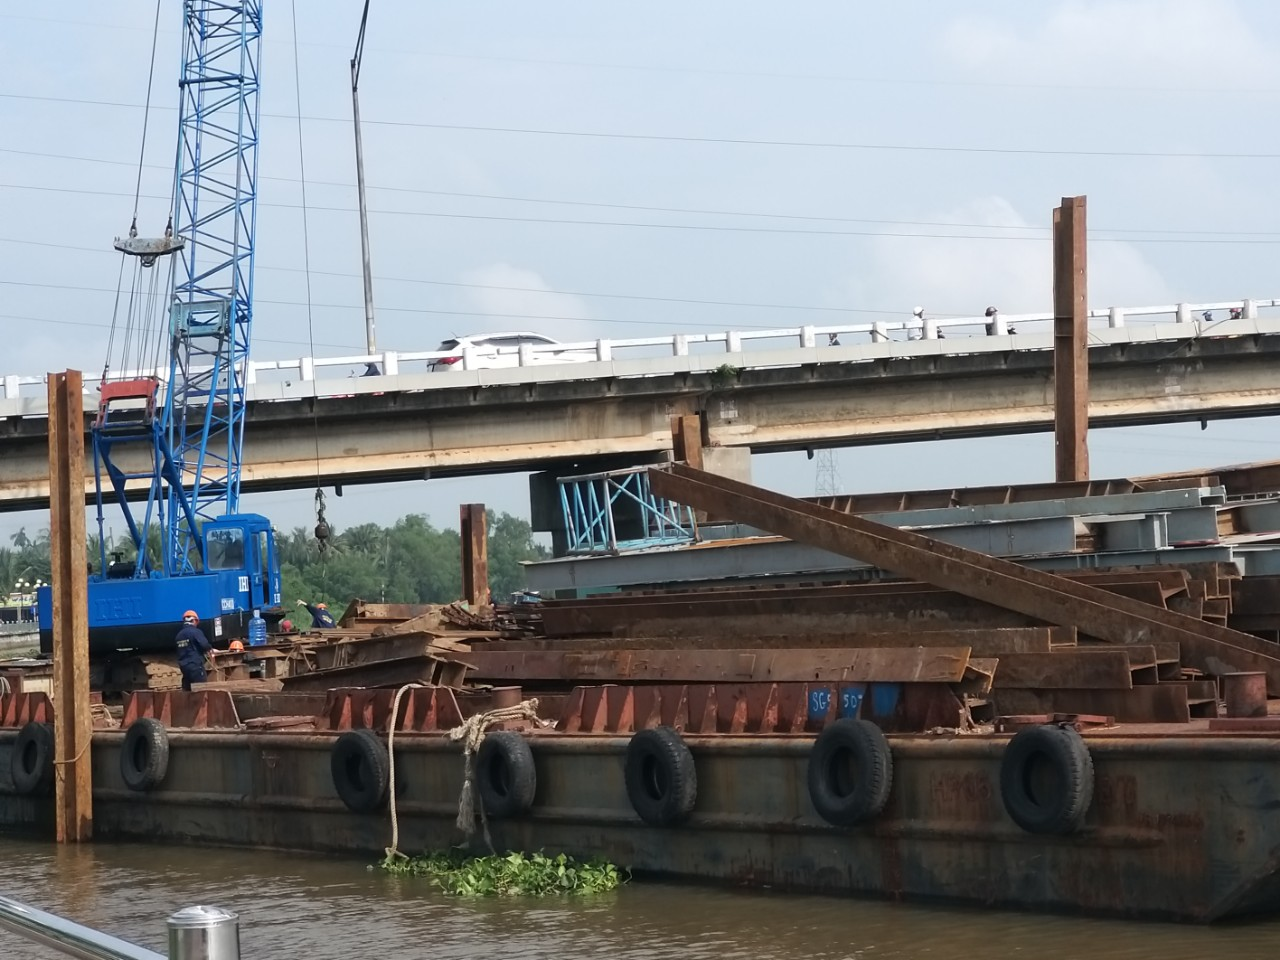 The bridge is expected to be completed in 2020